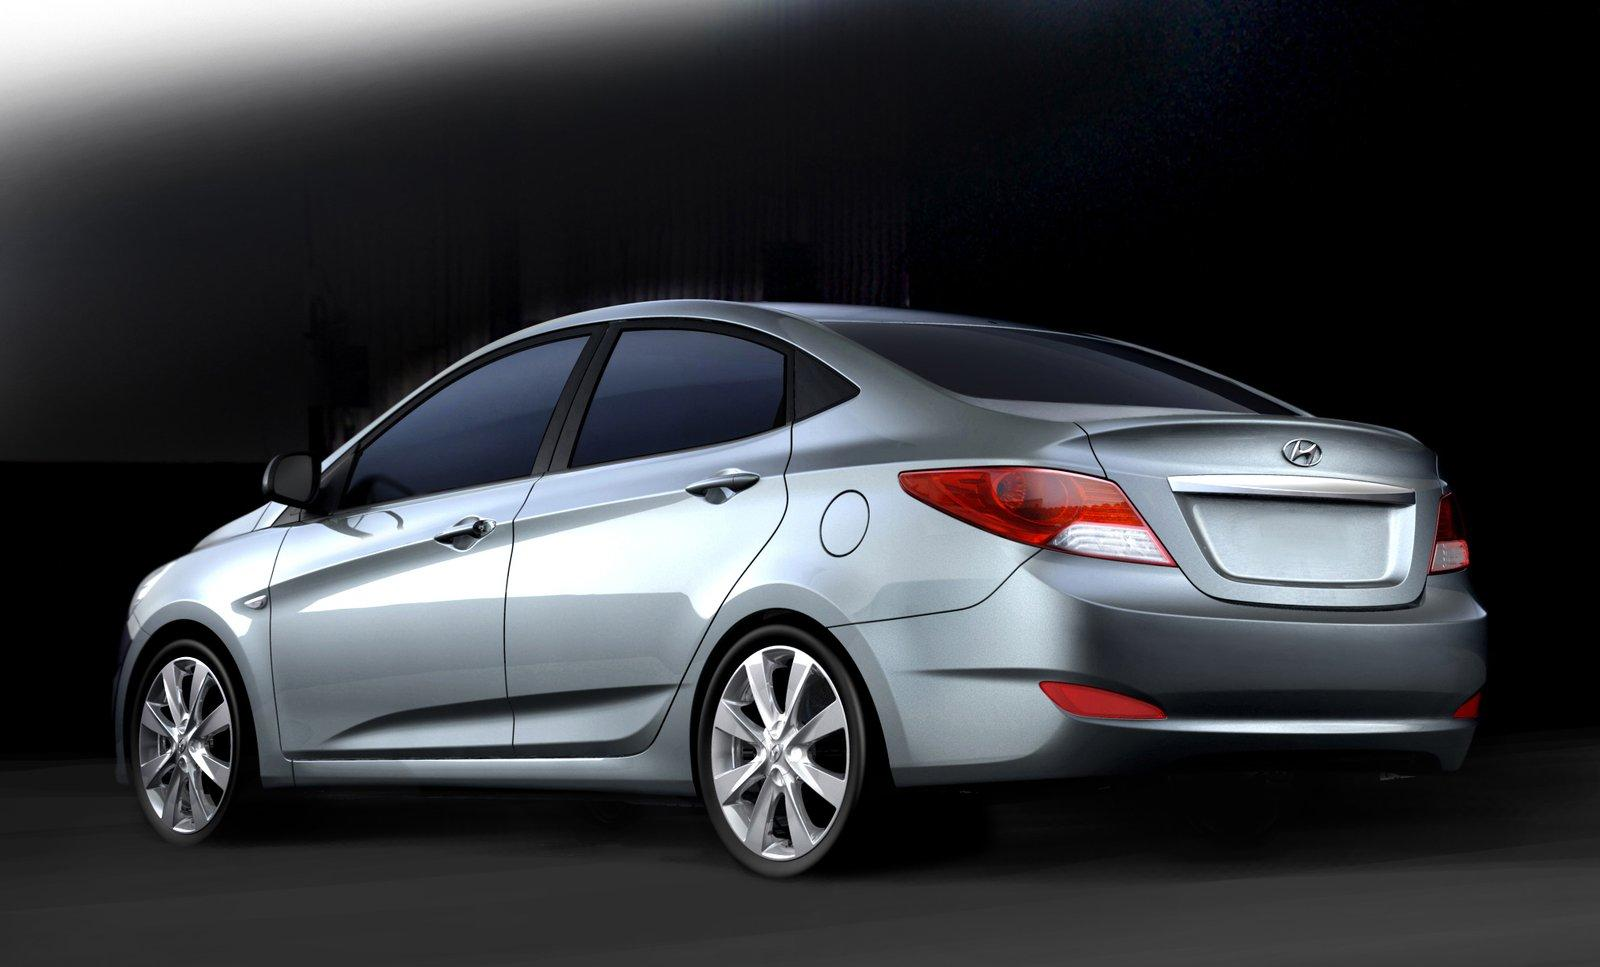 Hyundai Verna 1920x1200 Wallpaper Car Prices, Photos, Specifications